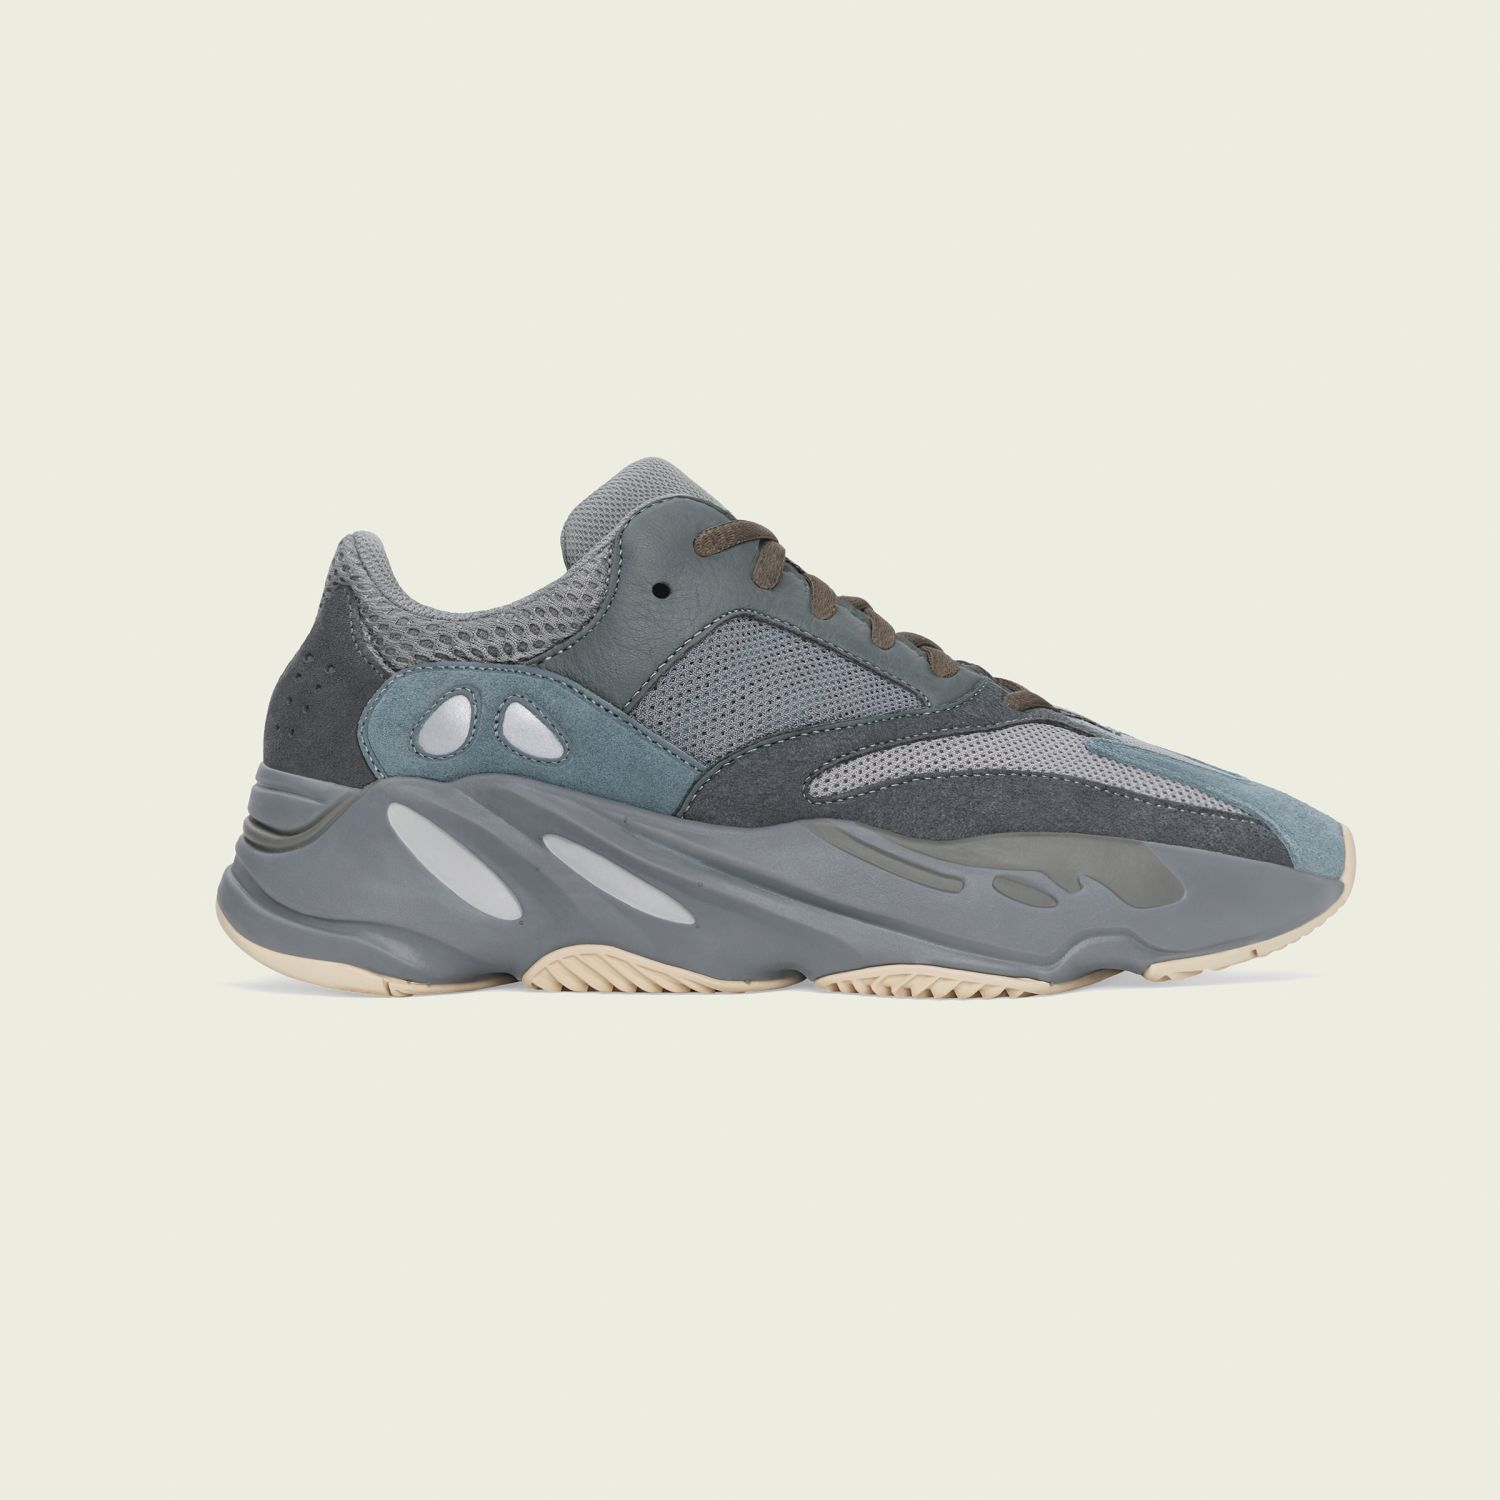 Yeezy Boost 700 Teal Blue [1]